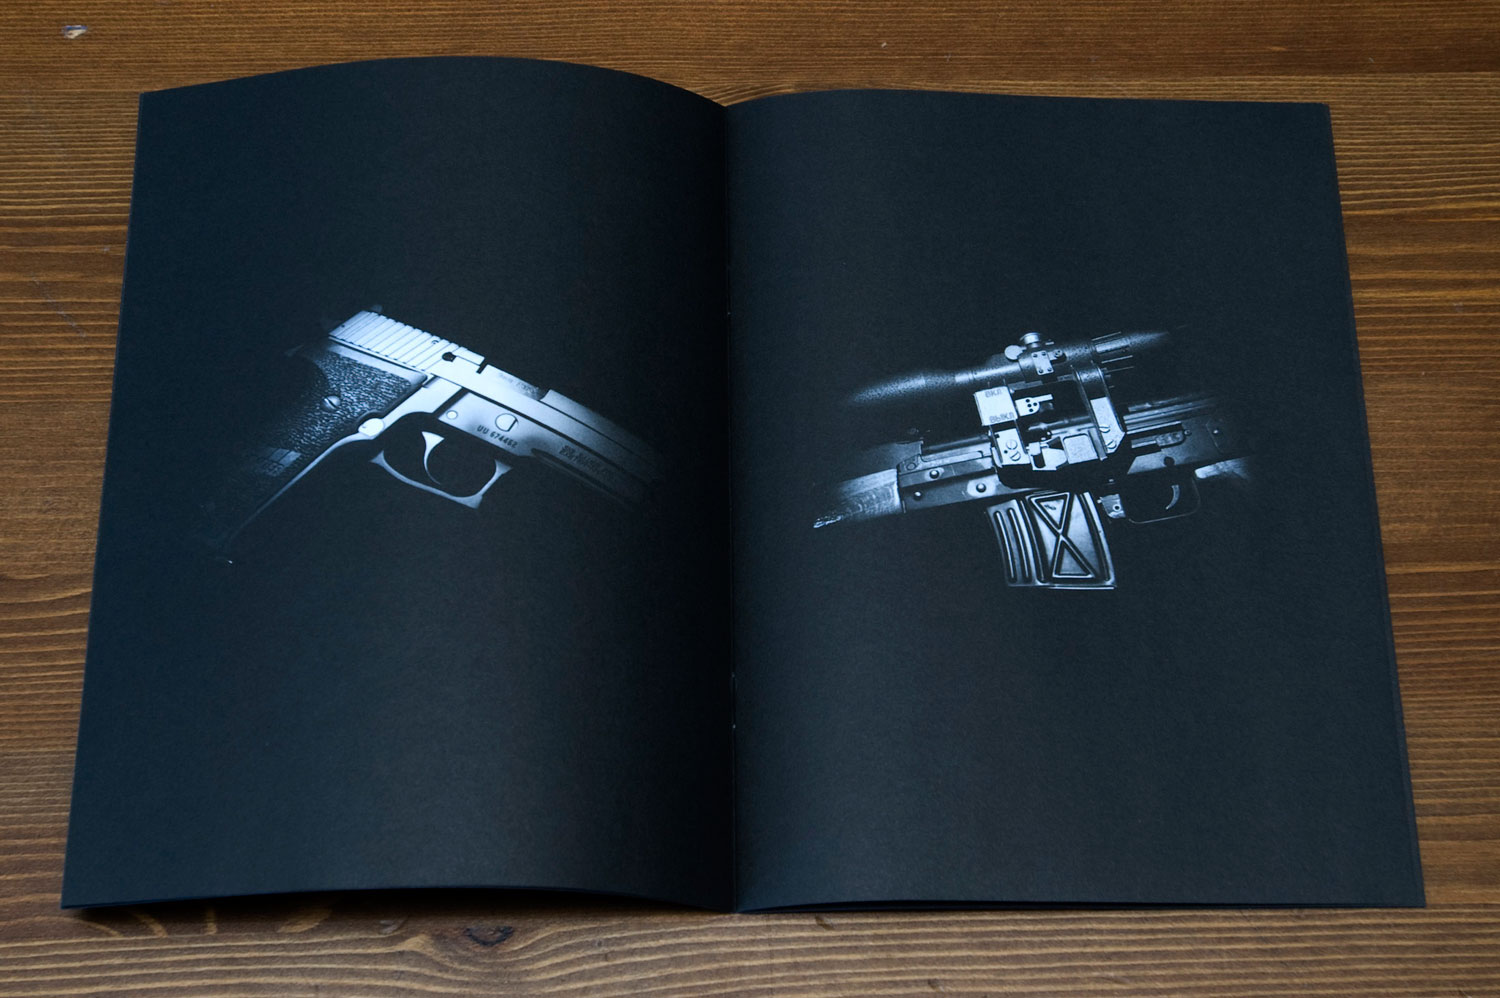 Postcards From America: spread from booklet by Paolo Pellegrin